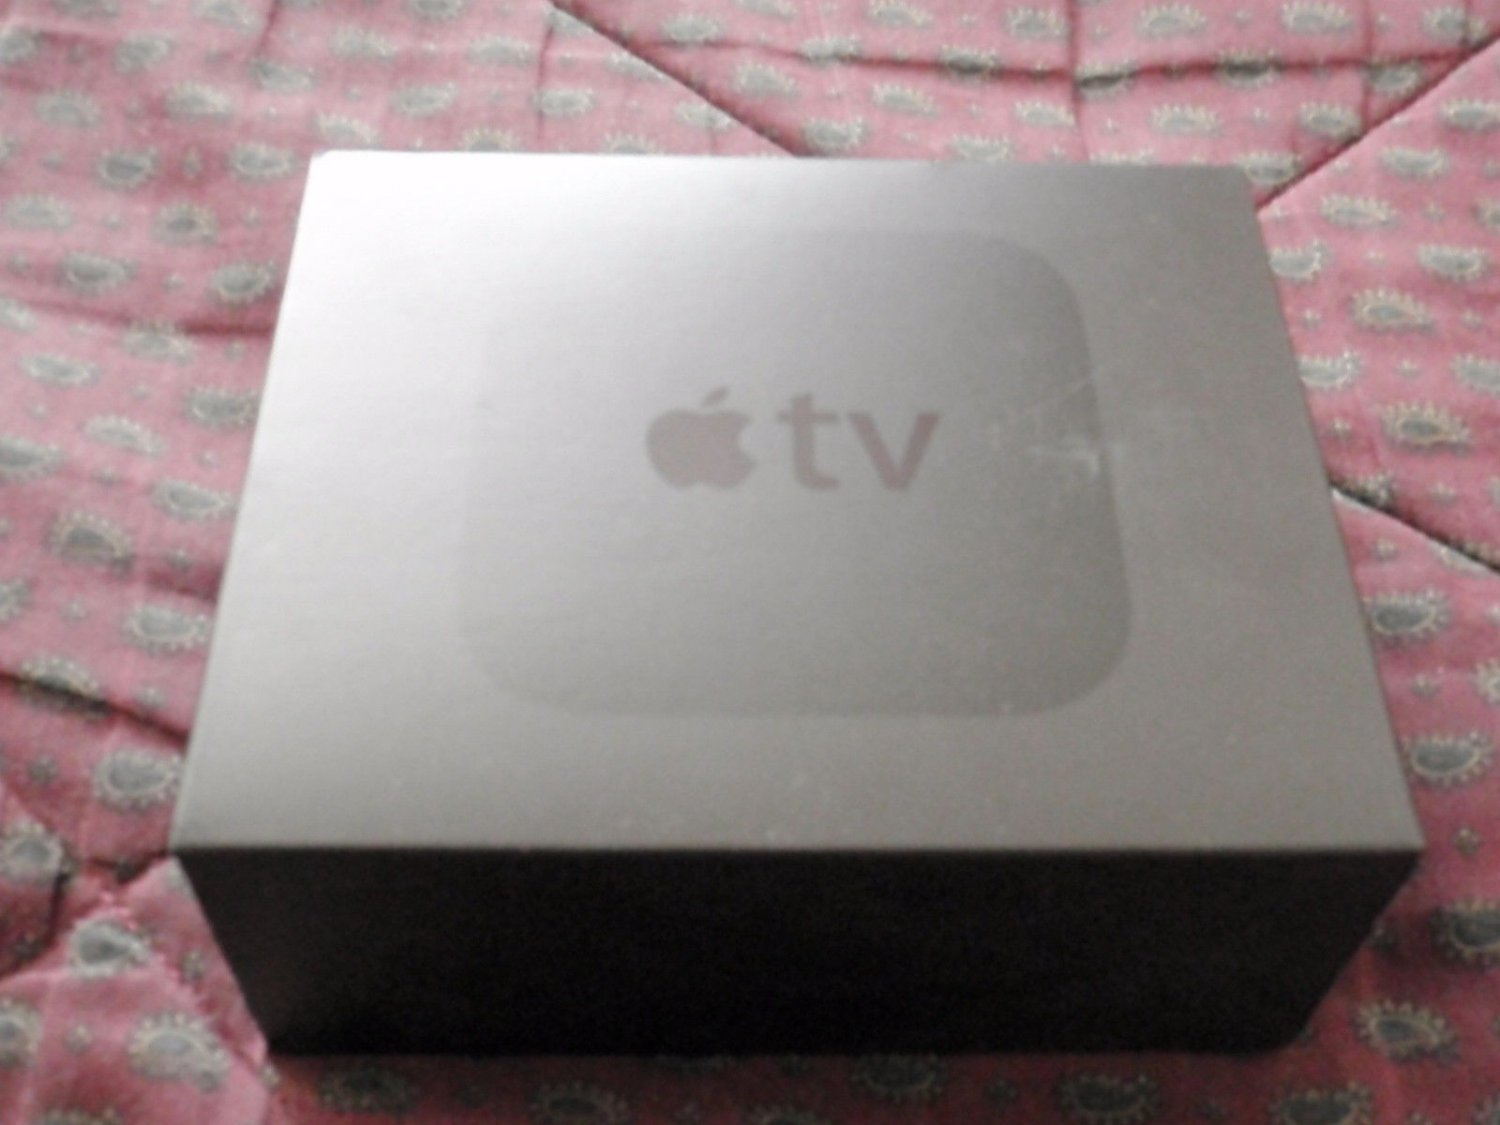 EMPTY BOX for Apple TV (4th Generation) 64GB HD -- EMPTY BOX - Model A1625 - BOX ONLY